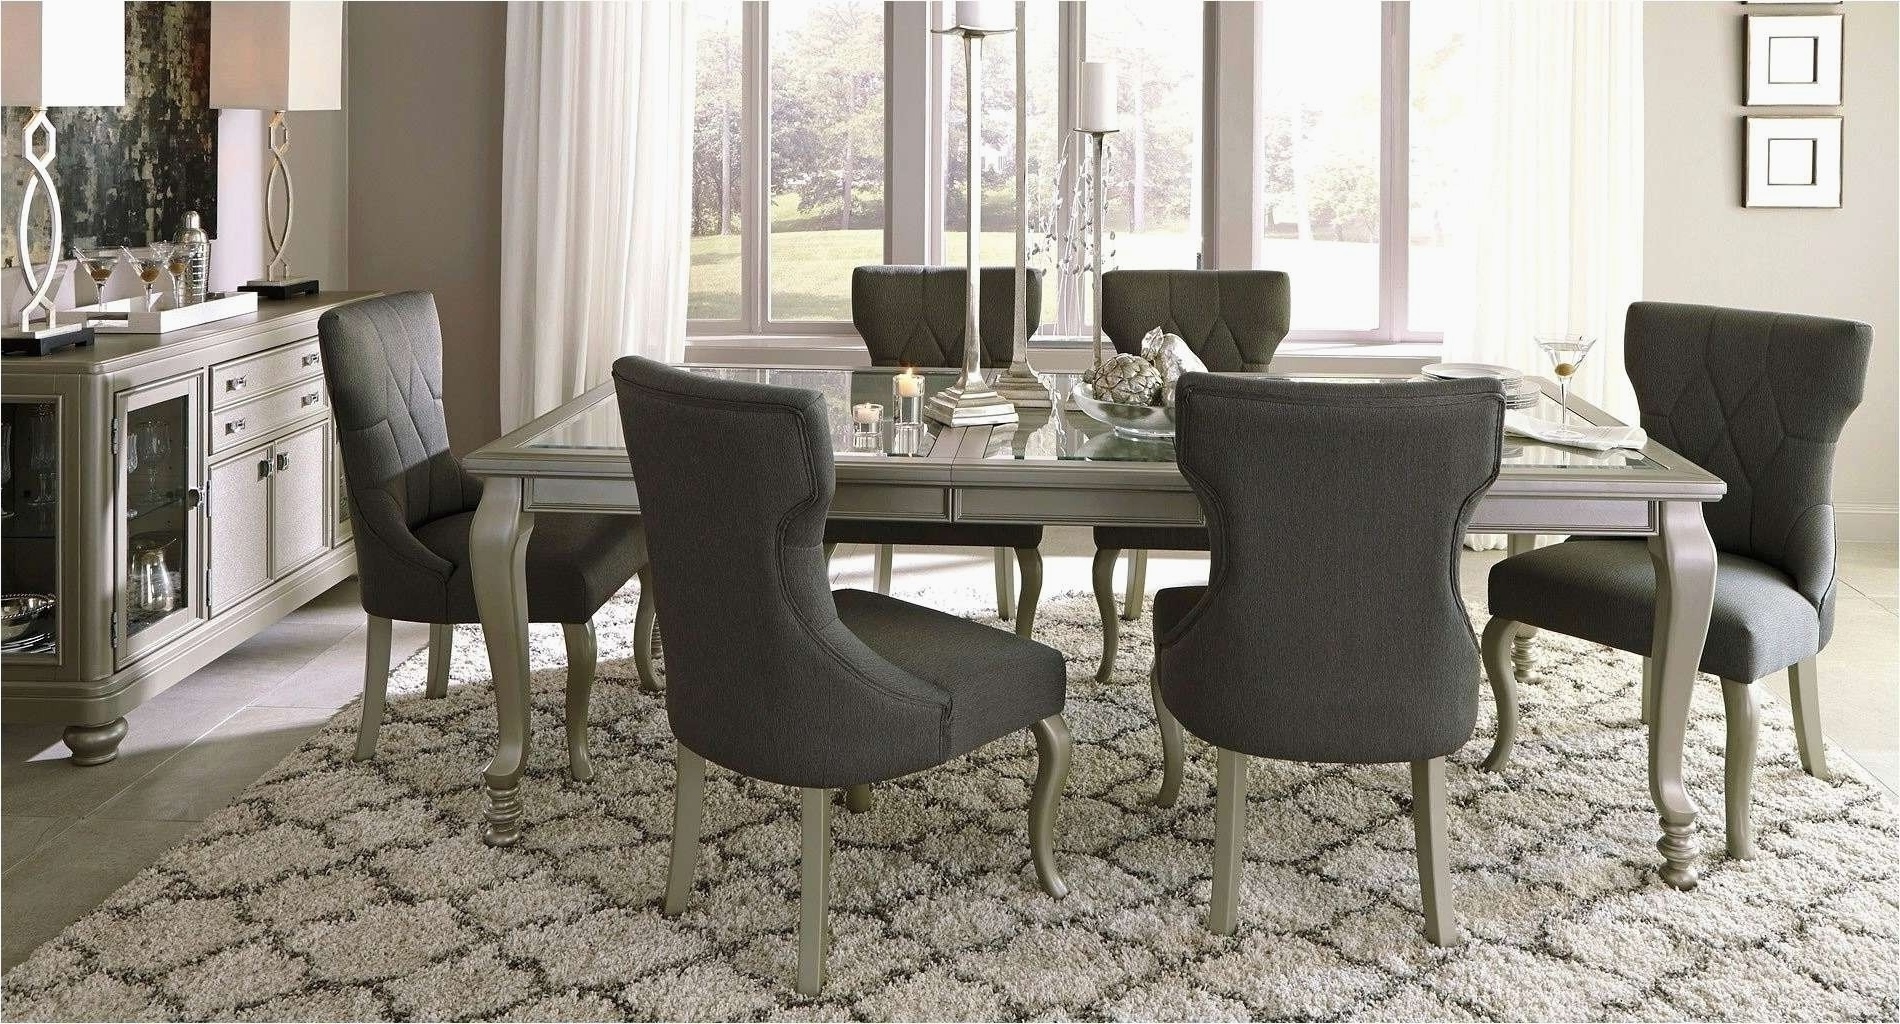 10 Seater Dining Table And Chairs Inspirational 24 Best Dining Room Regarding Well Known 10 Seater Dining Tables And Chairs (View 10 of 25)